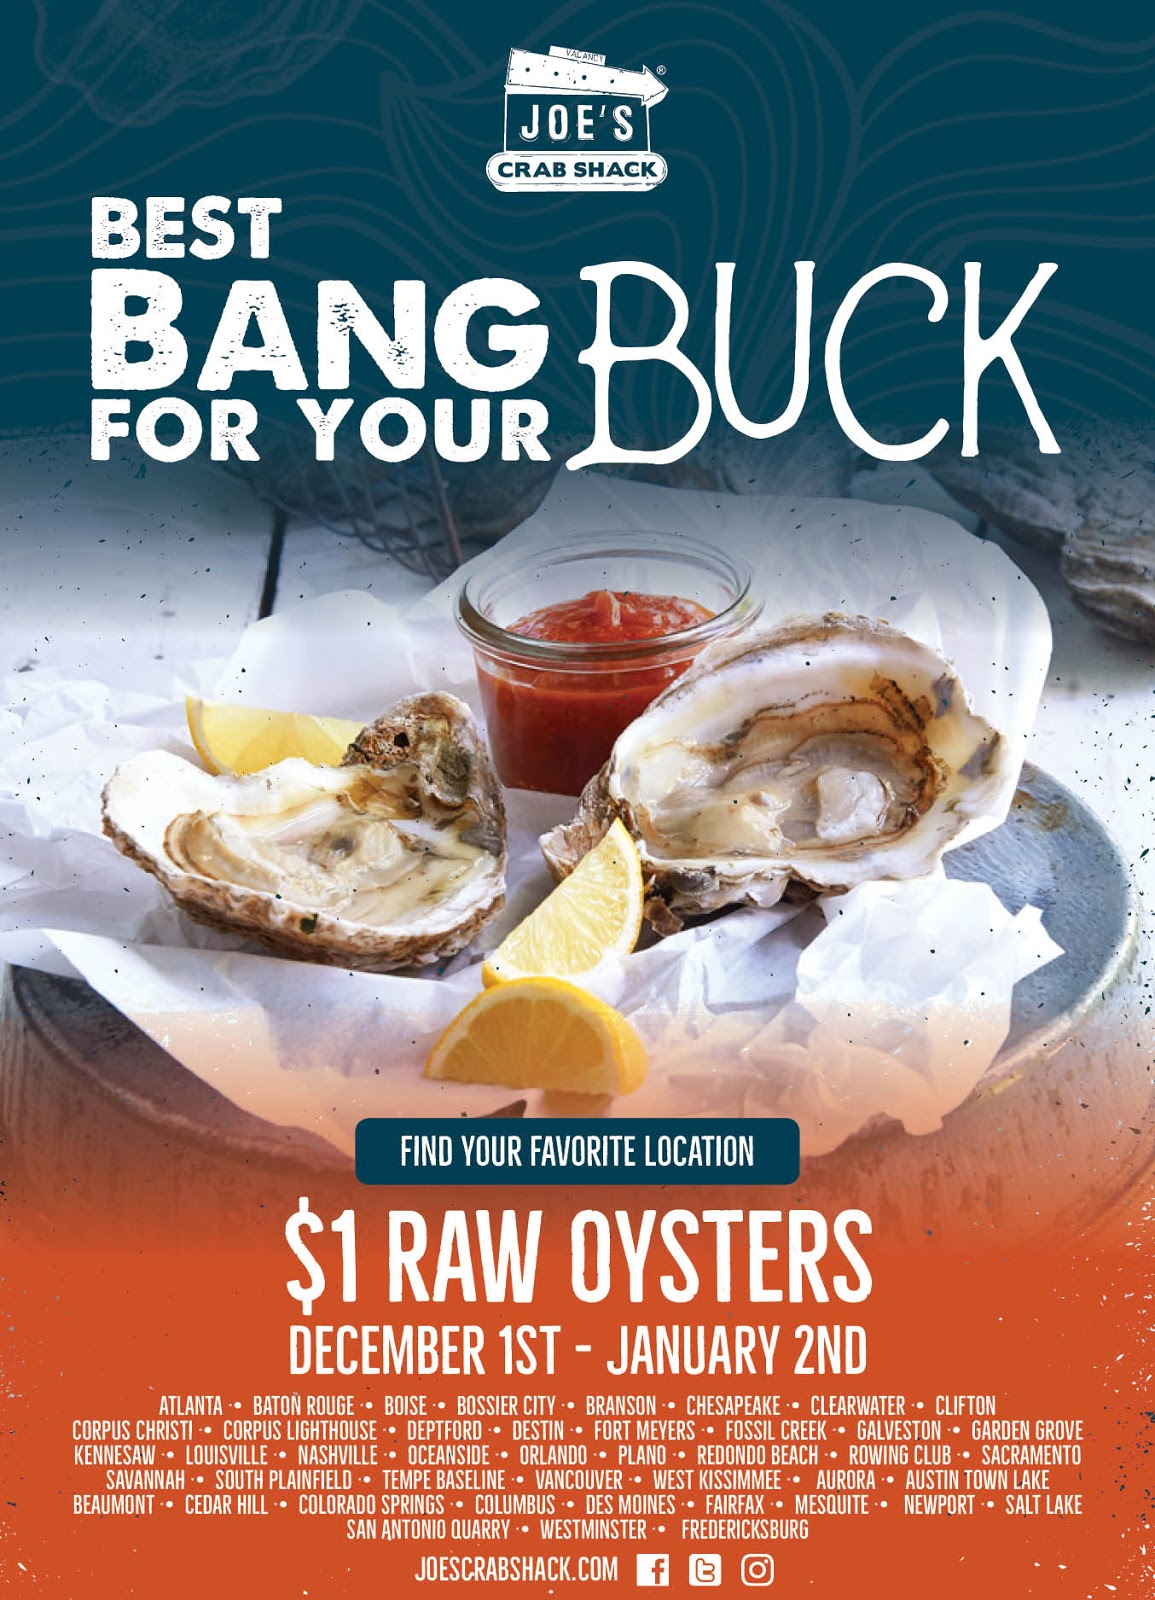 Dec. 1 - Jan 2 |  $1 Raw Oyster Deals @ Joe's Crab Shack